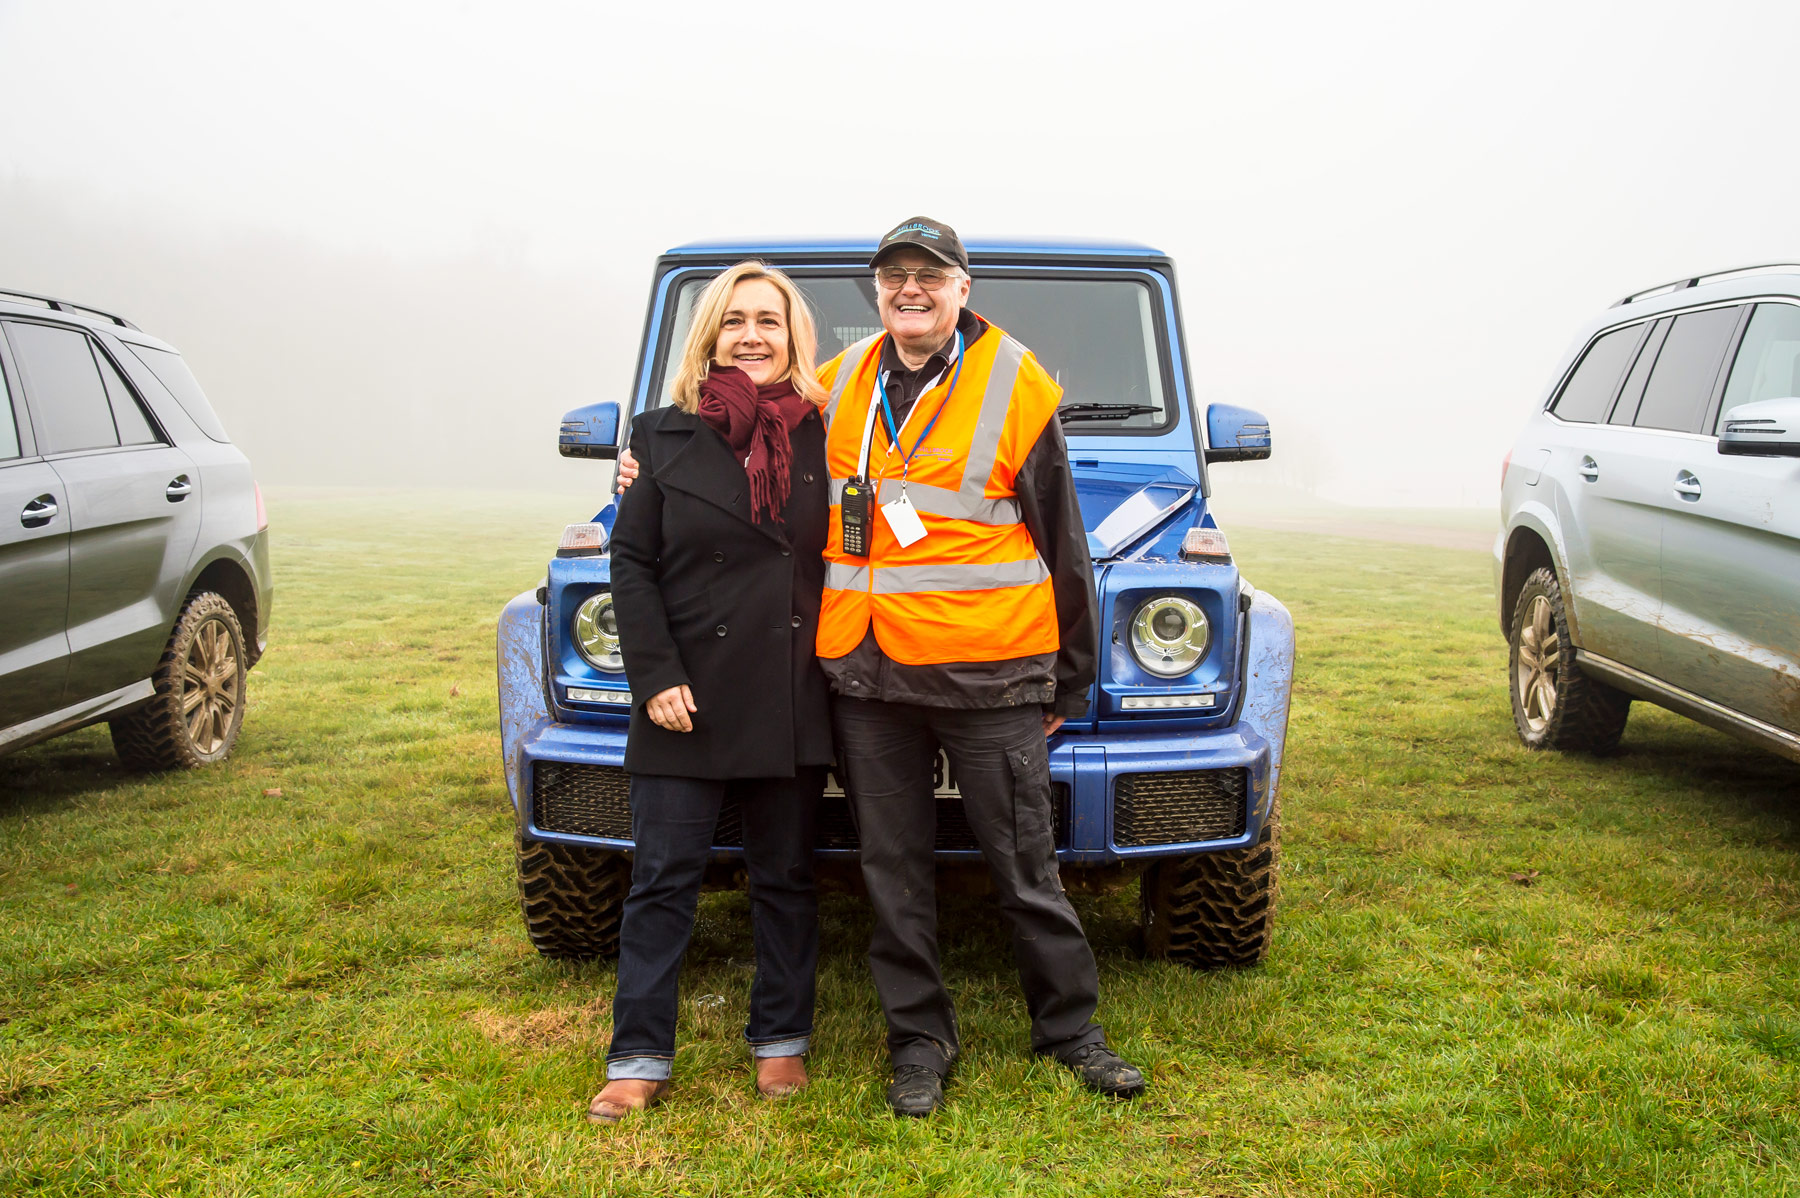 Mercedes-Benz SUV G Class Off-Road Test At Millbrook Proving Ground